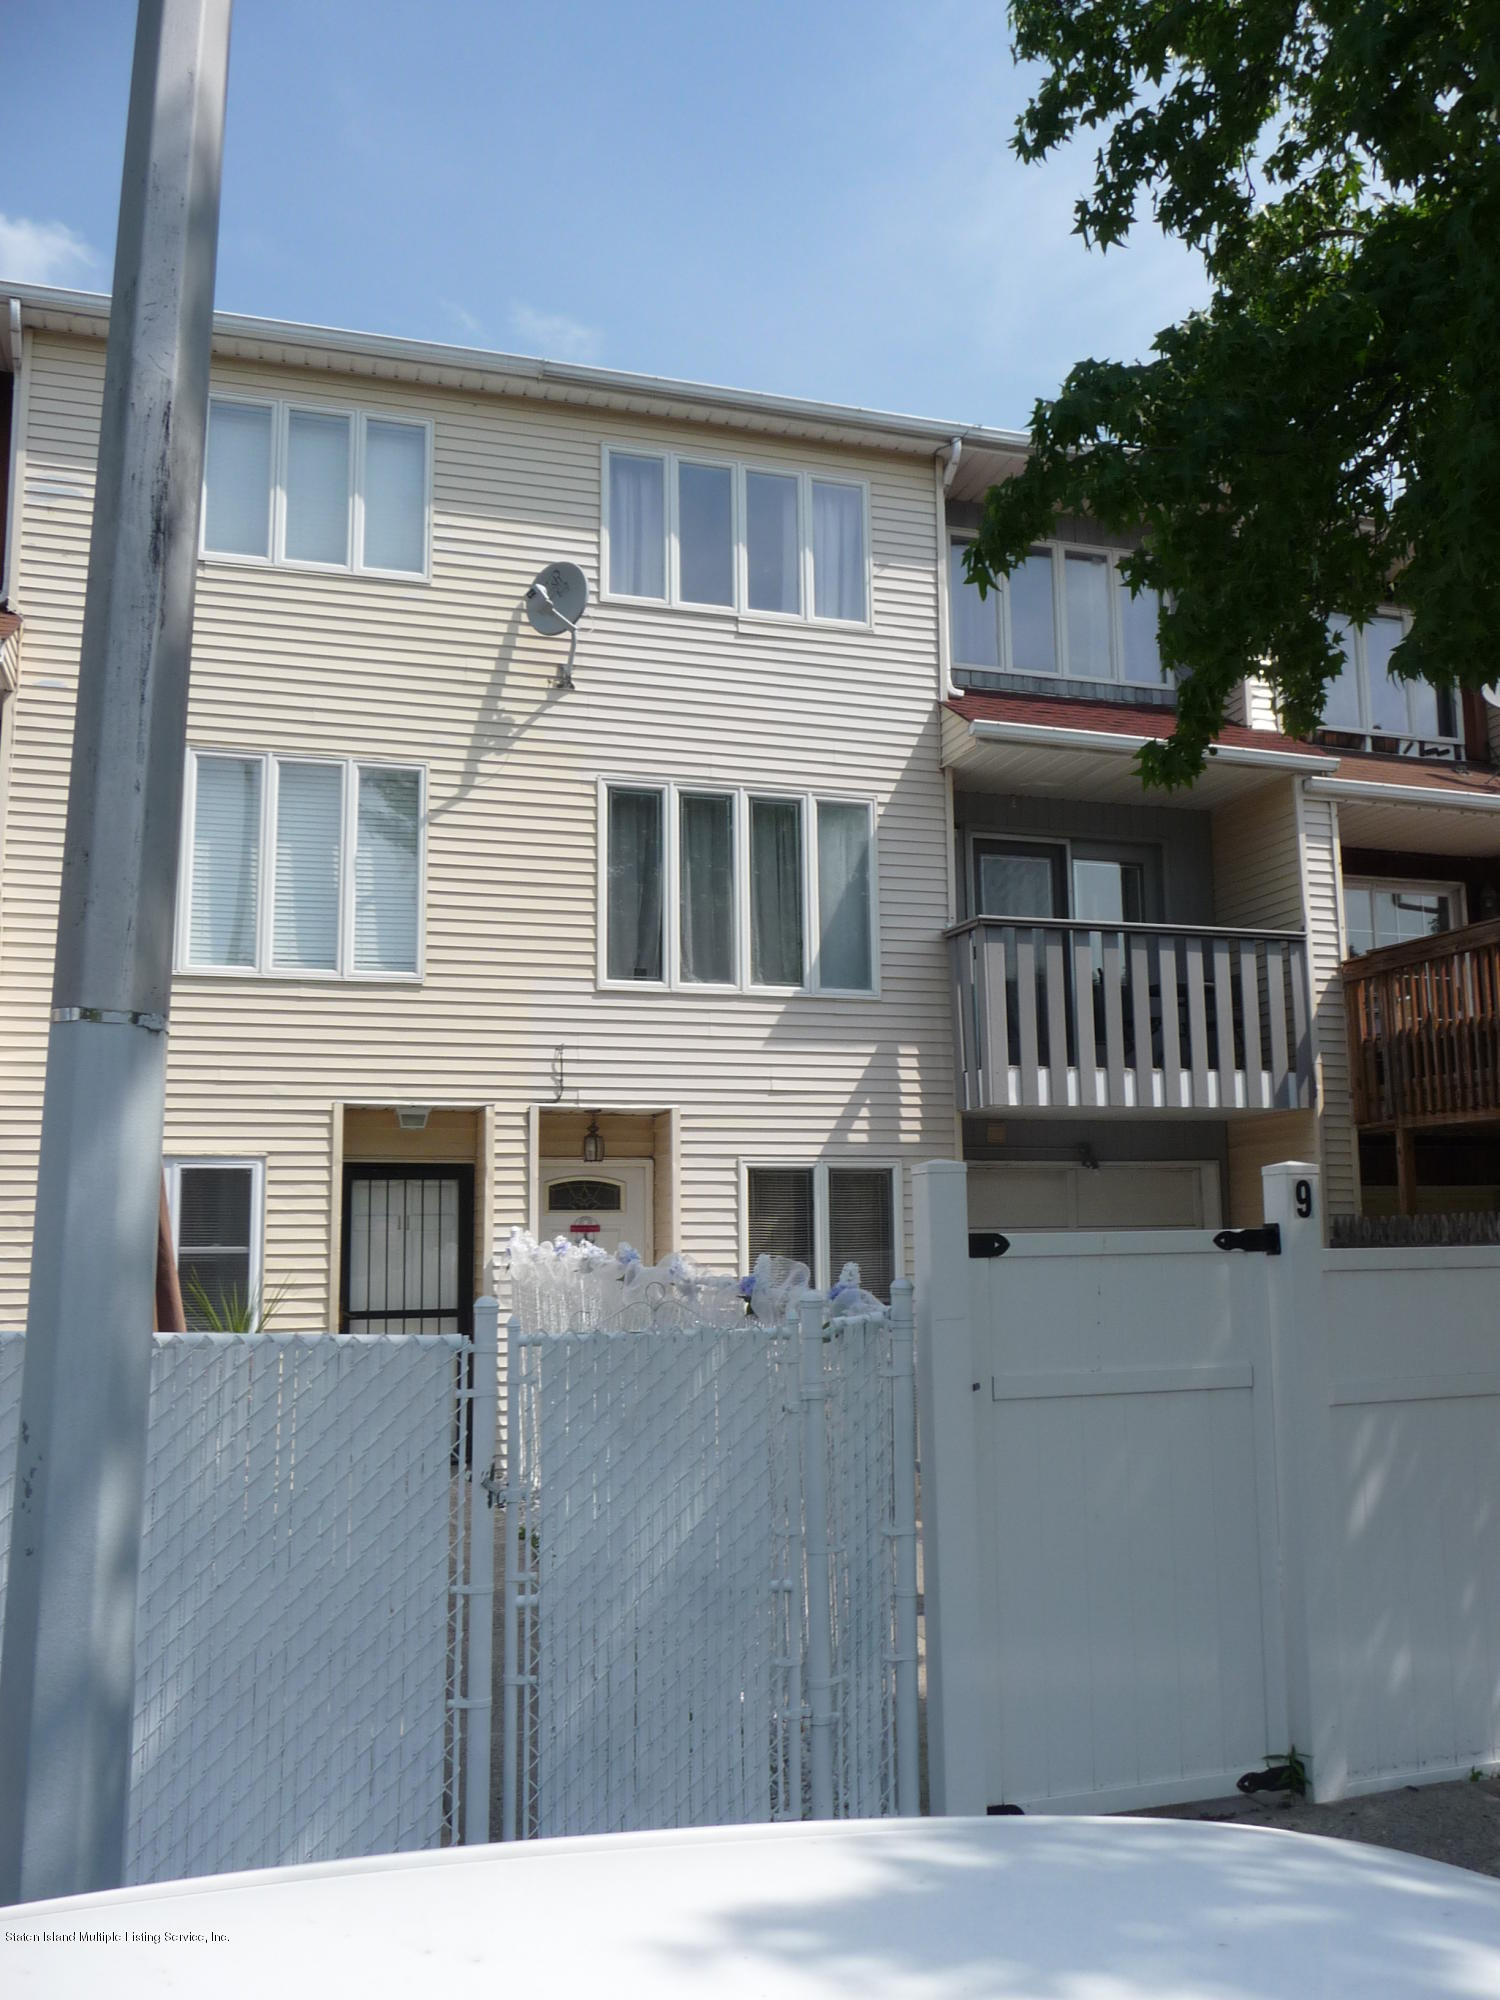 Single Family - Attached 9 Berry Avenue  Staten Island, NY 10312, MLS-1130296-19